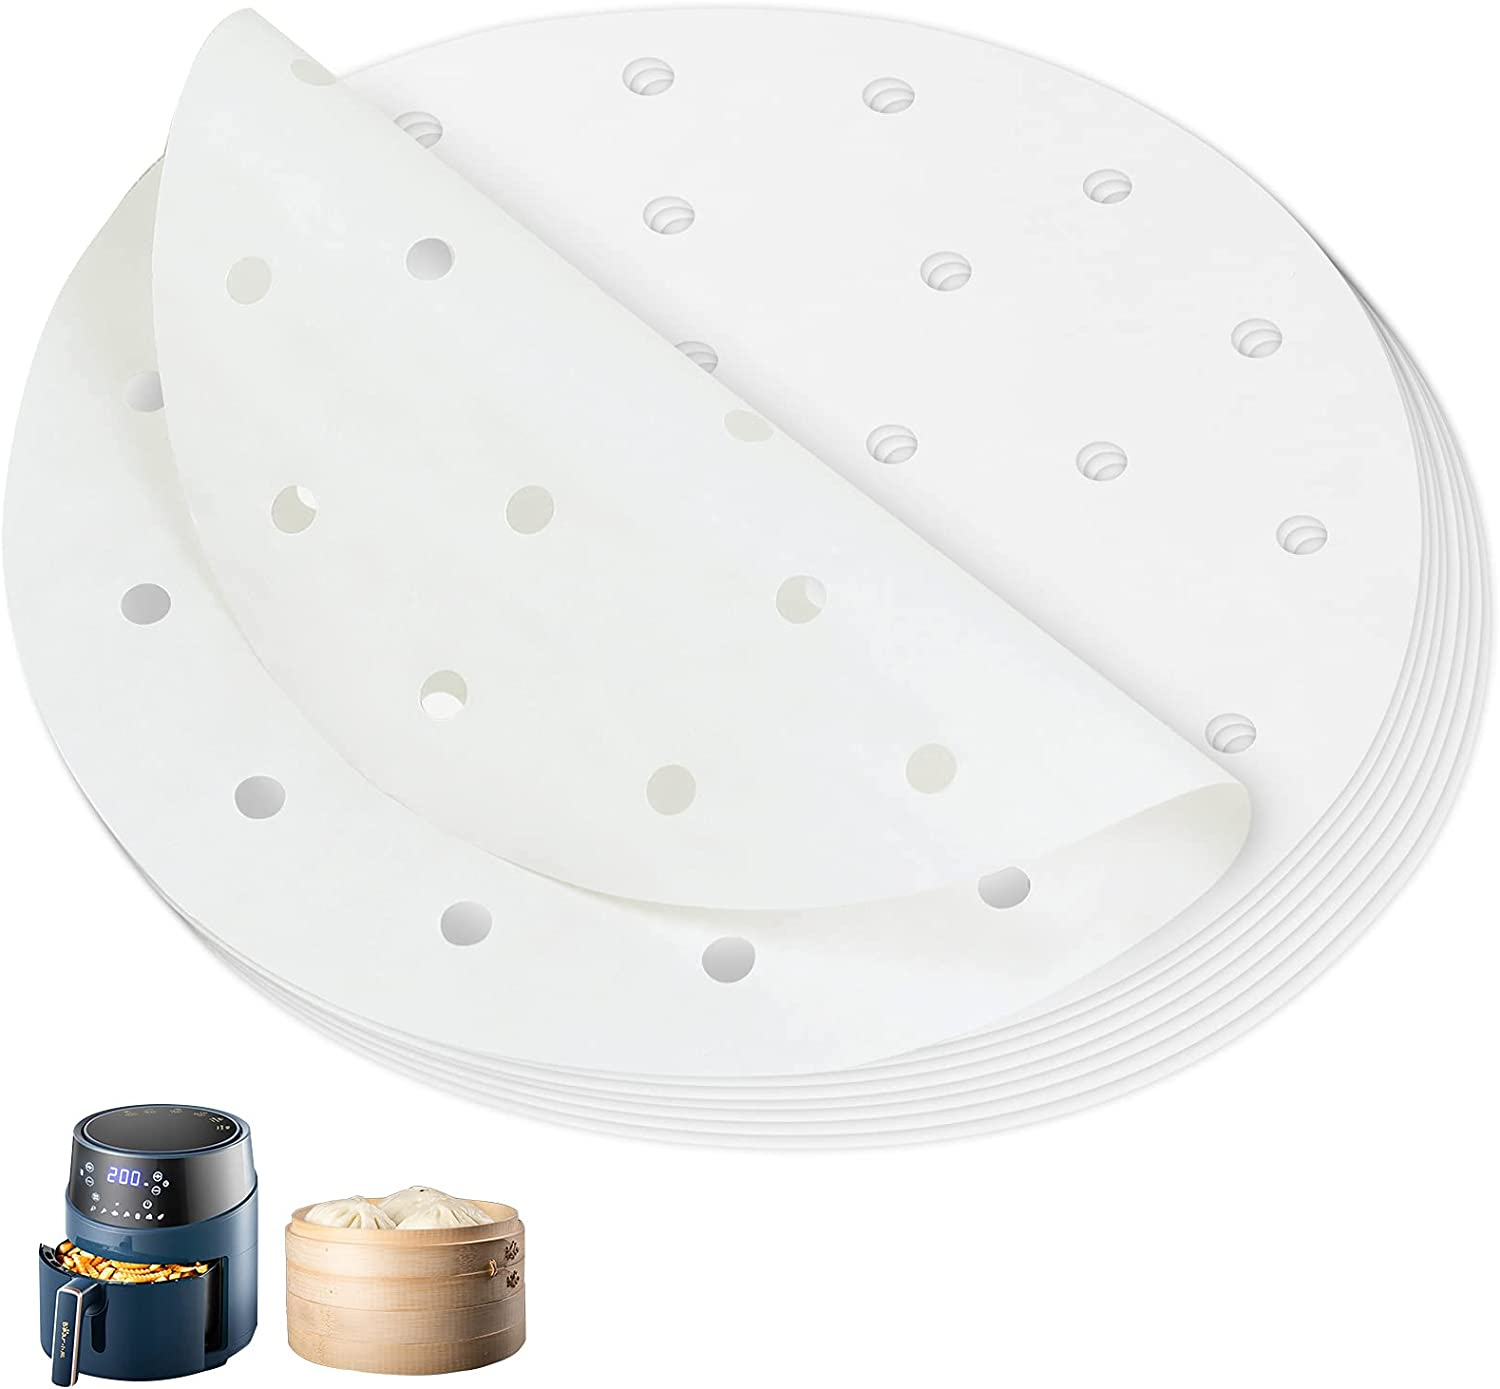 Air Fryer Liners(100pcs) ,Bamboo Steamer Paper,Premium Perforated Parchment Steaming Papers, Non-stick Steamer Mat, for Air Fryers/Baking/Cooking (6inch)